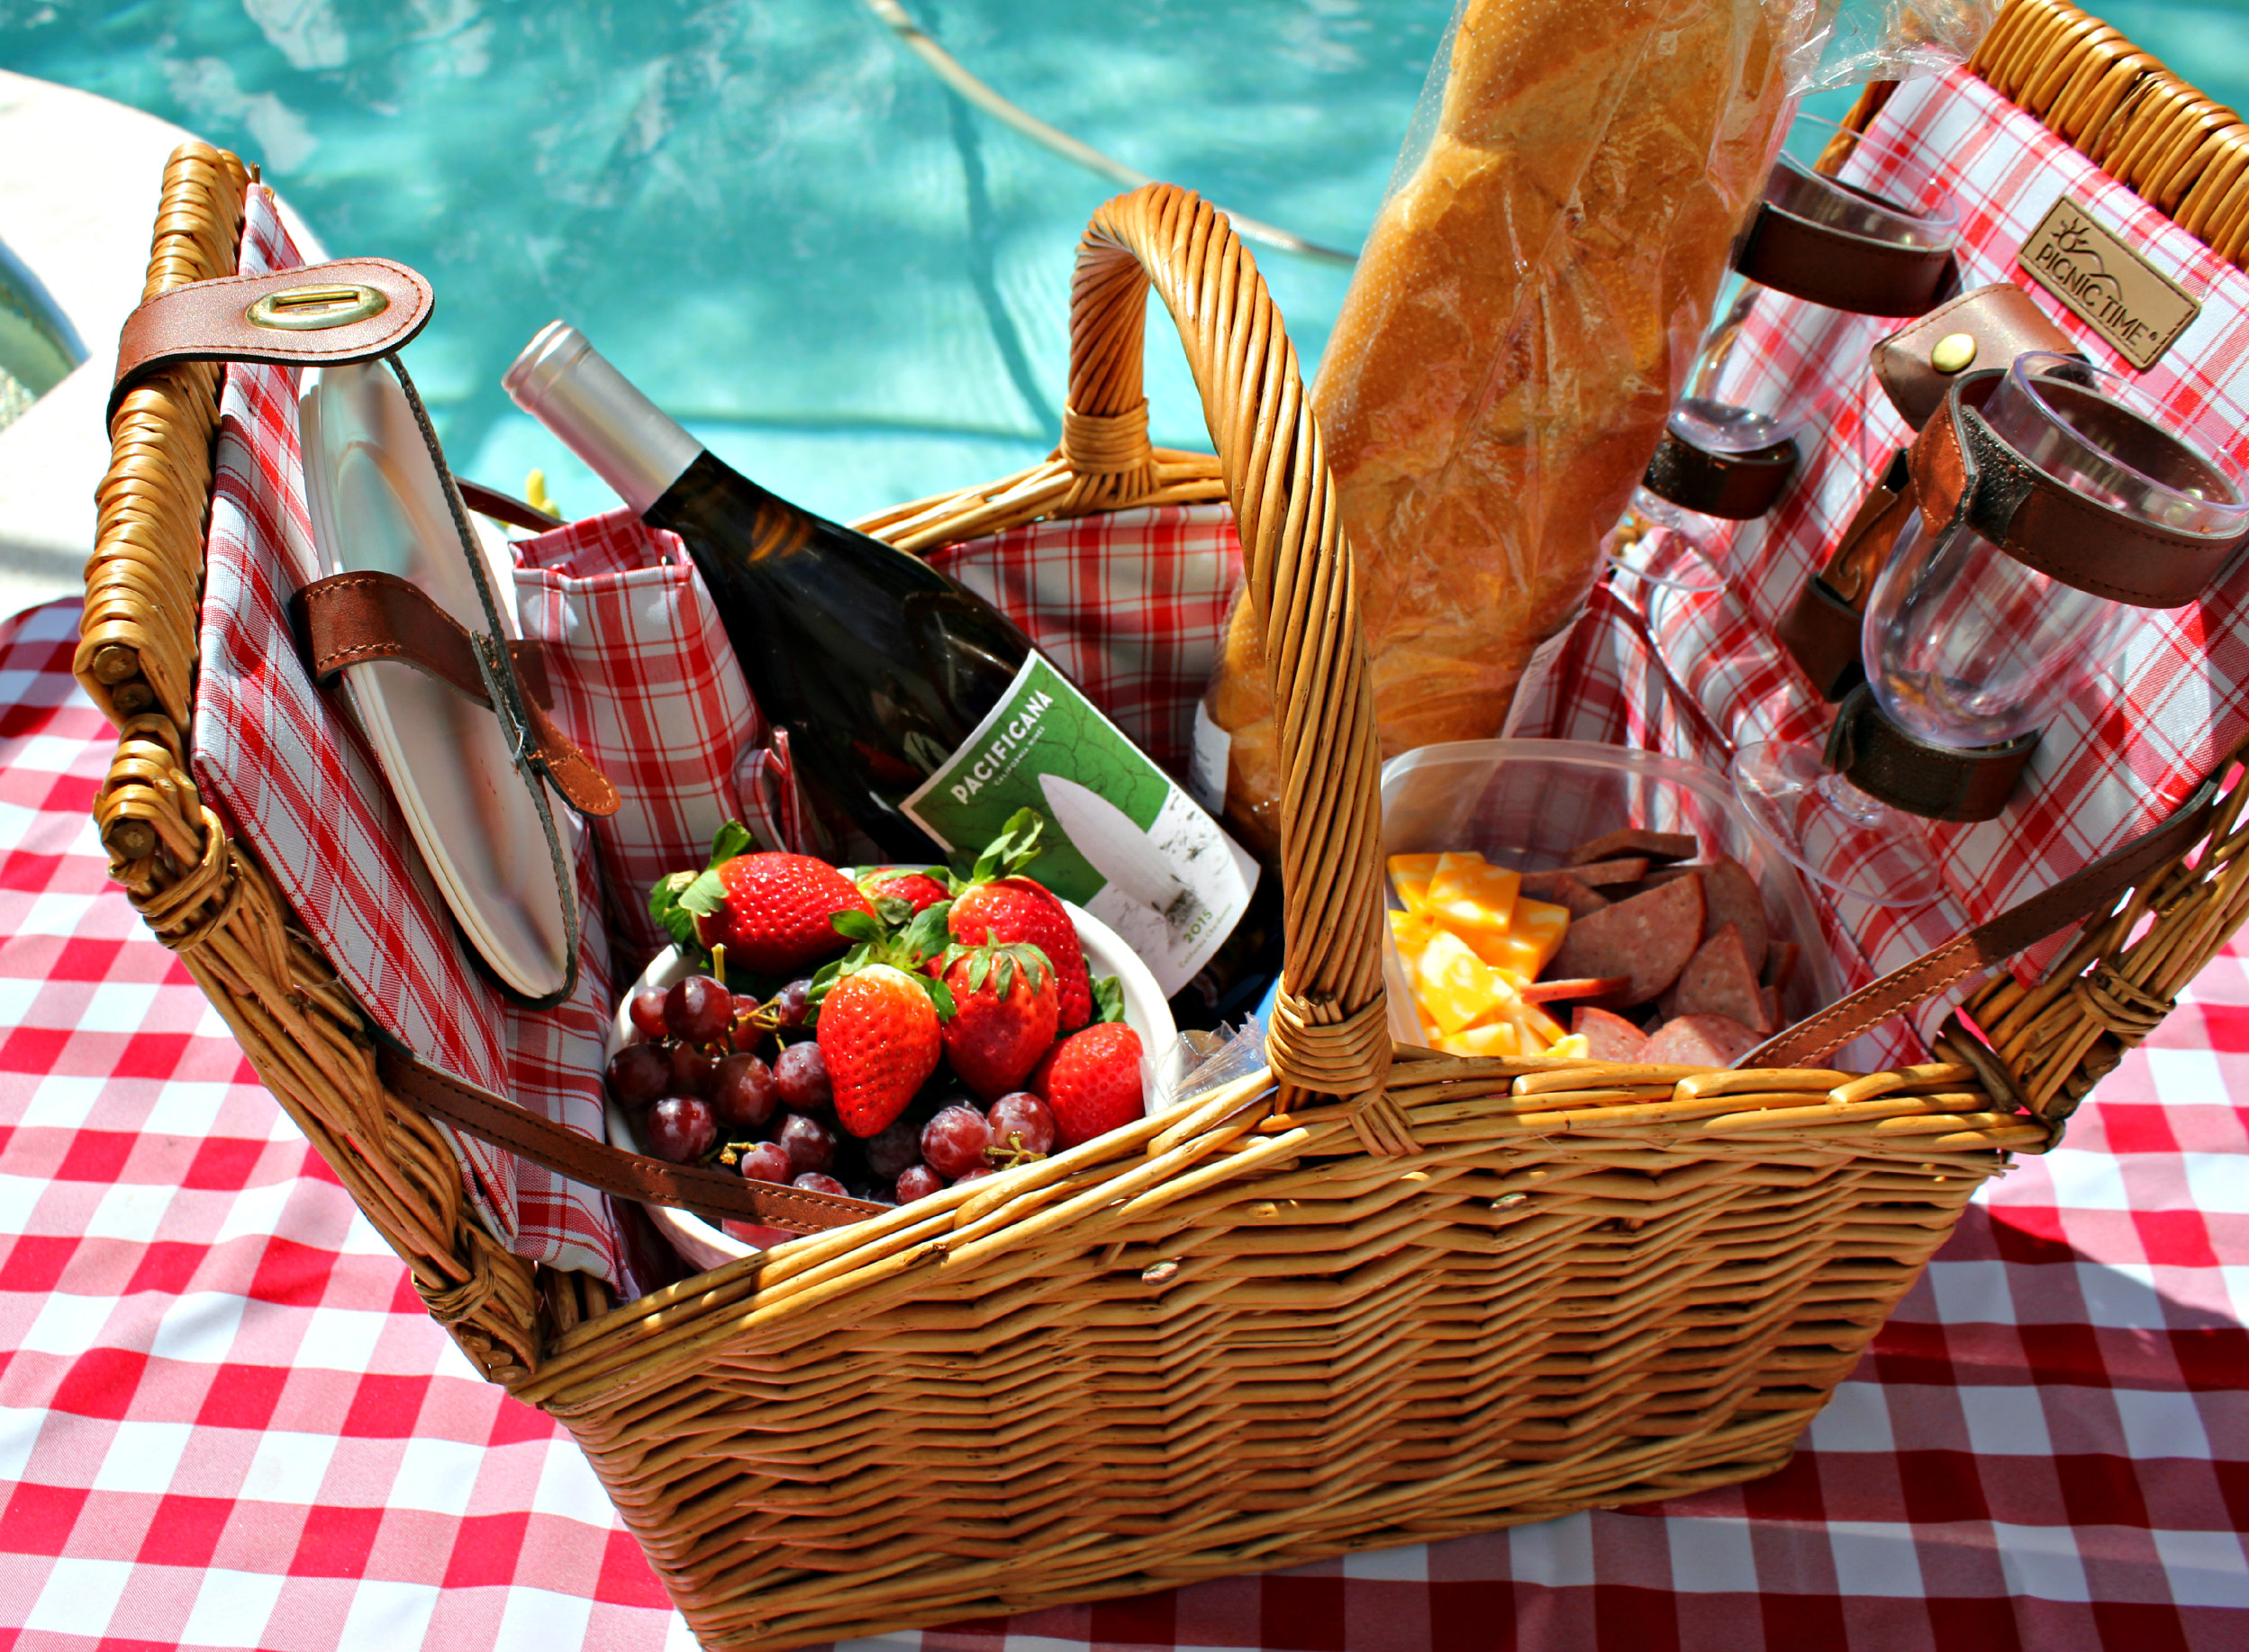 What to Pack in Your Picnic Basket